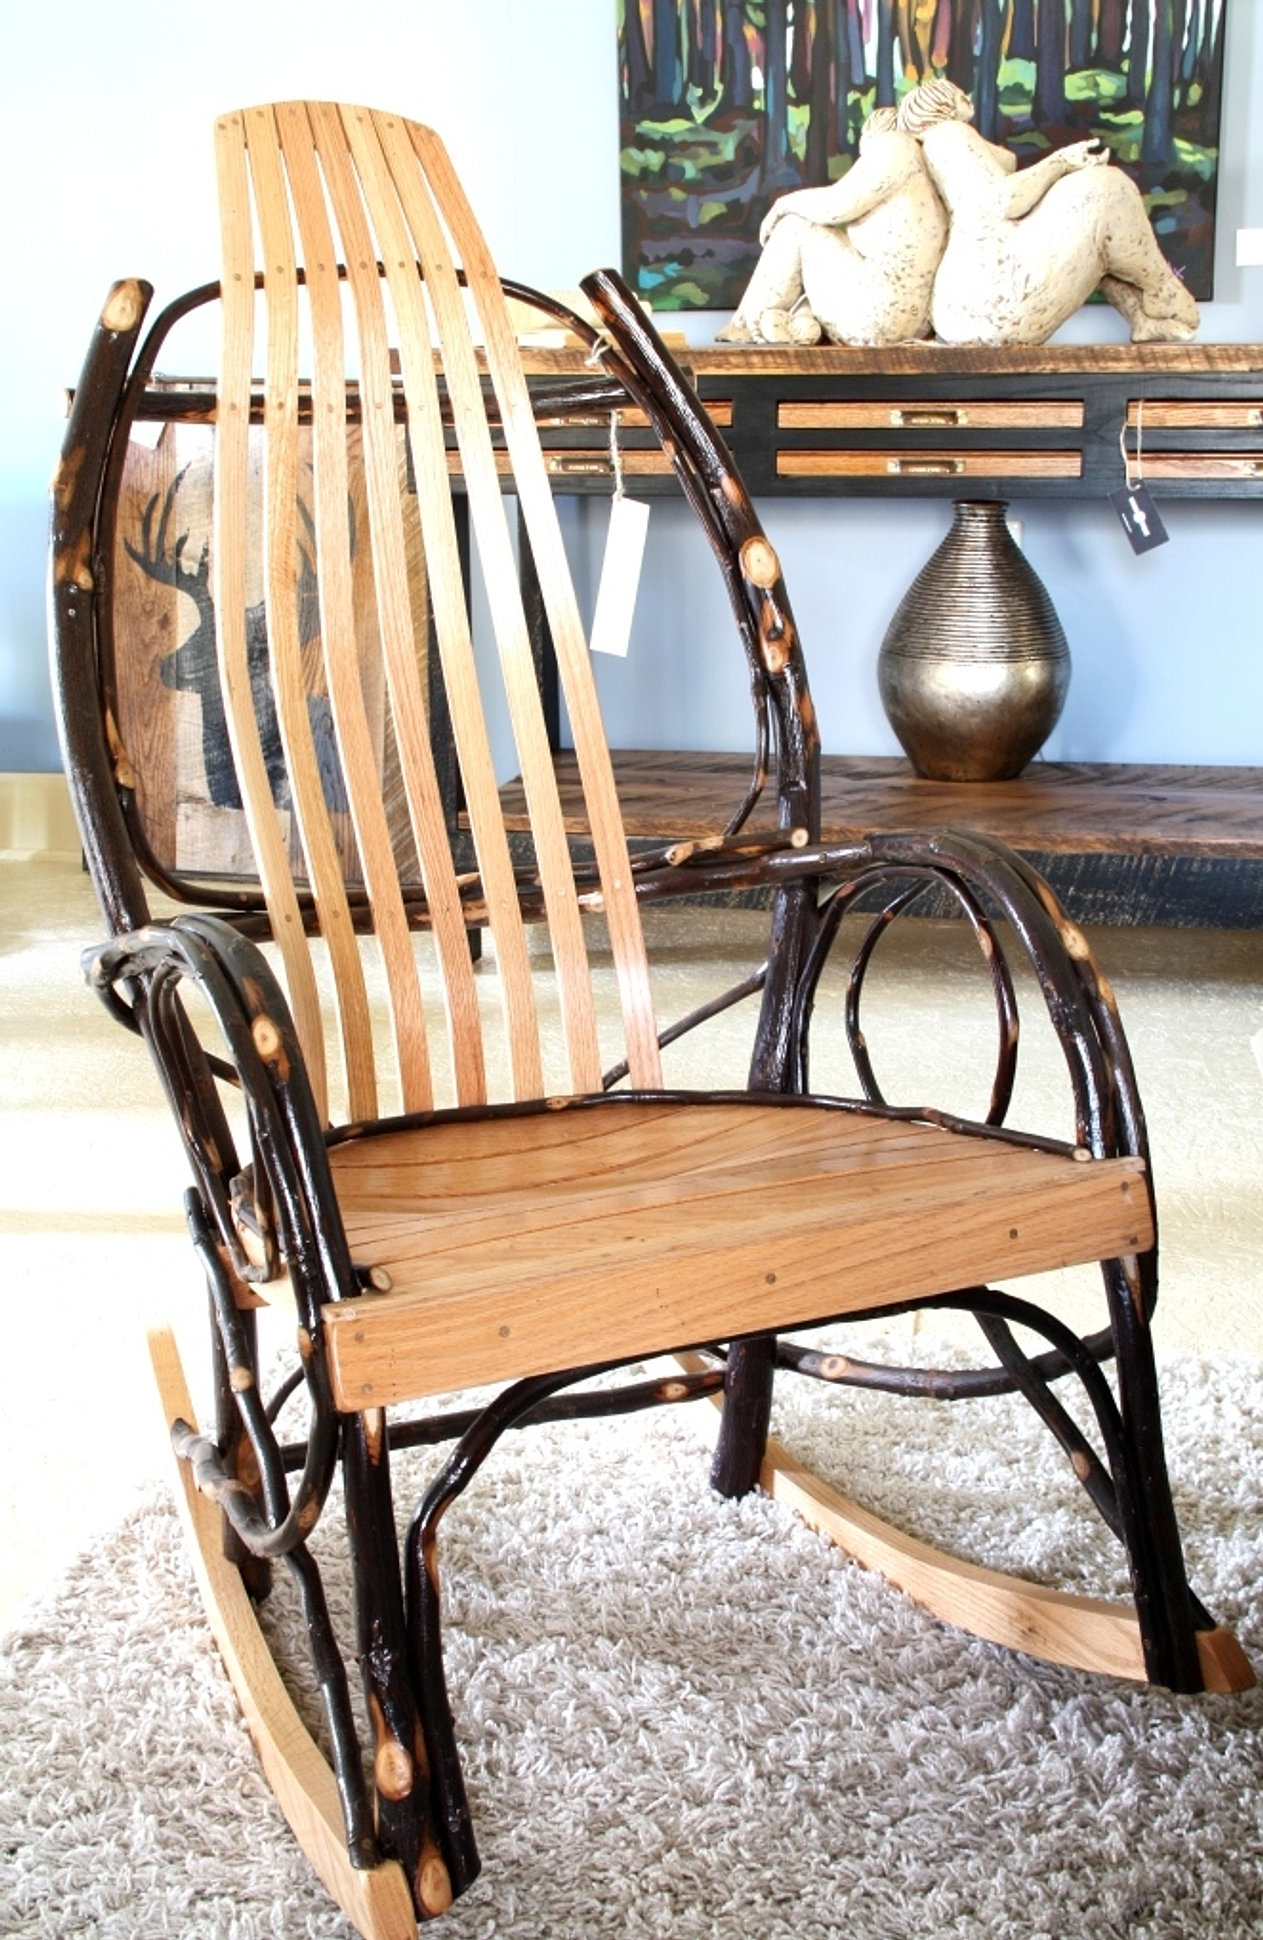 Rocking Chair by Joni Byler (sold)